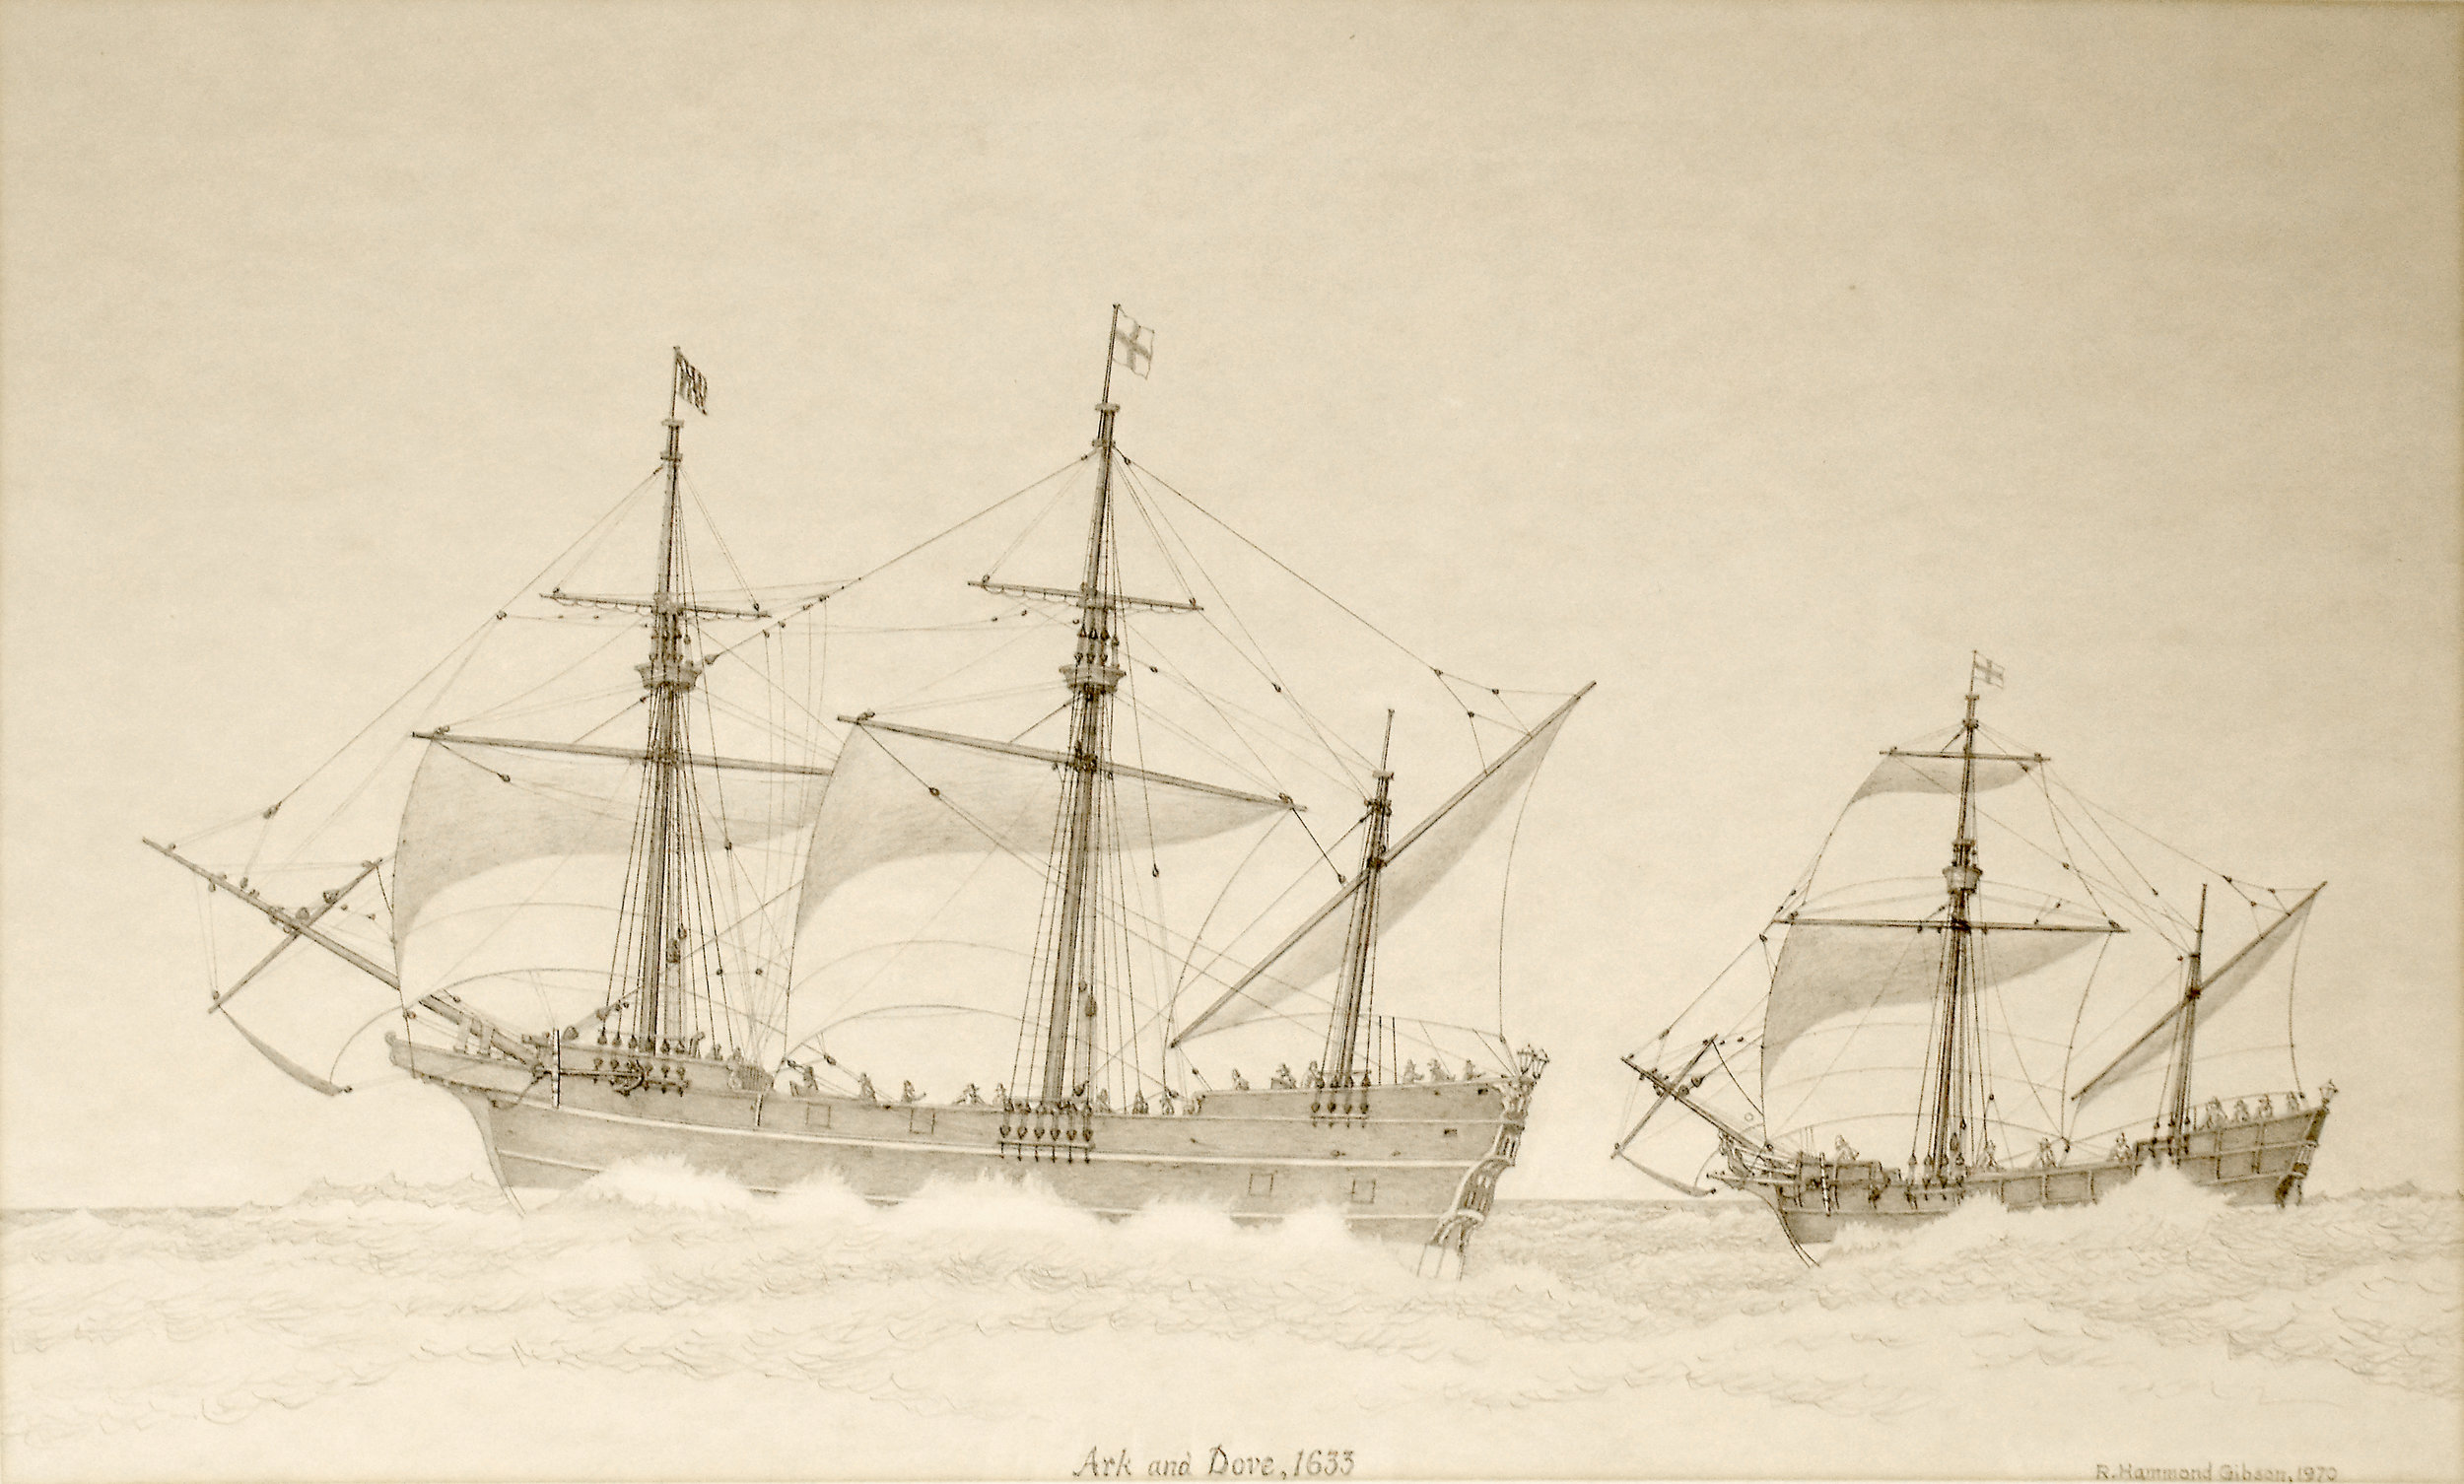 An artist's conception of the Dove showed the vessel with a two-masted rig, though square-rigged on the mainmast, which is now thought to be unlikely. R. Hammond Gibson, c. 1970. Collection of the Chesapeake Bay Maritime Museum, 1970-28-1.